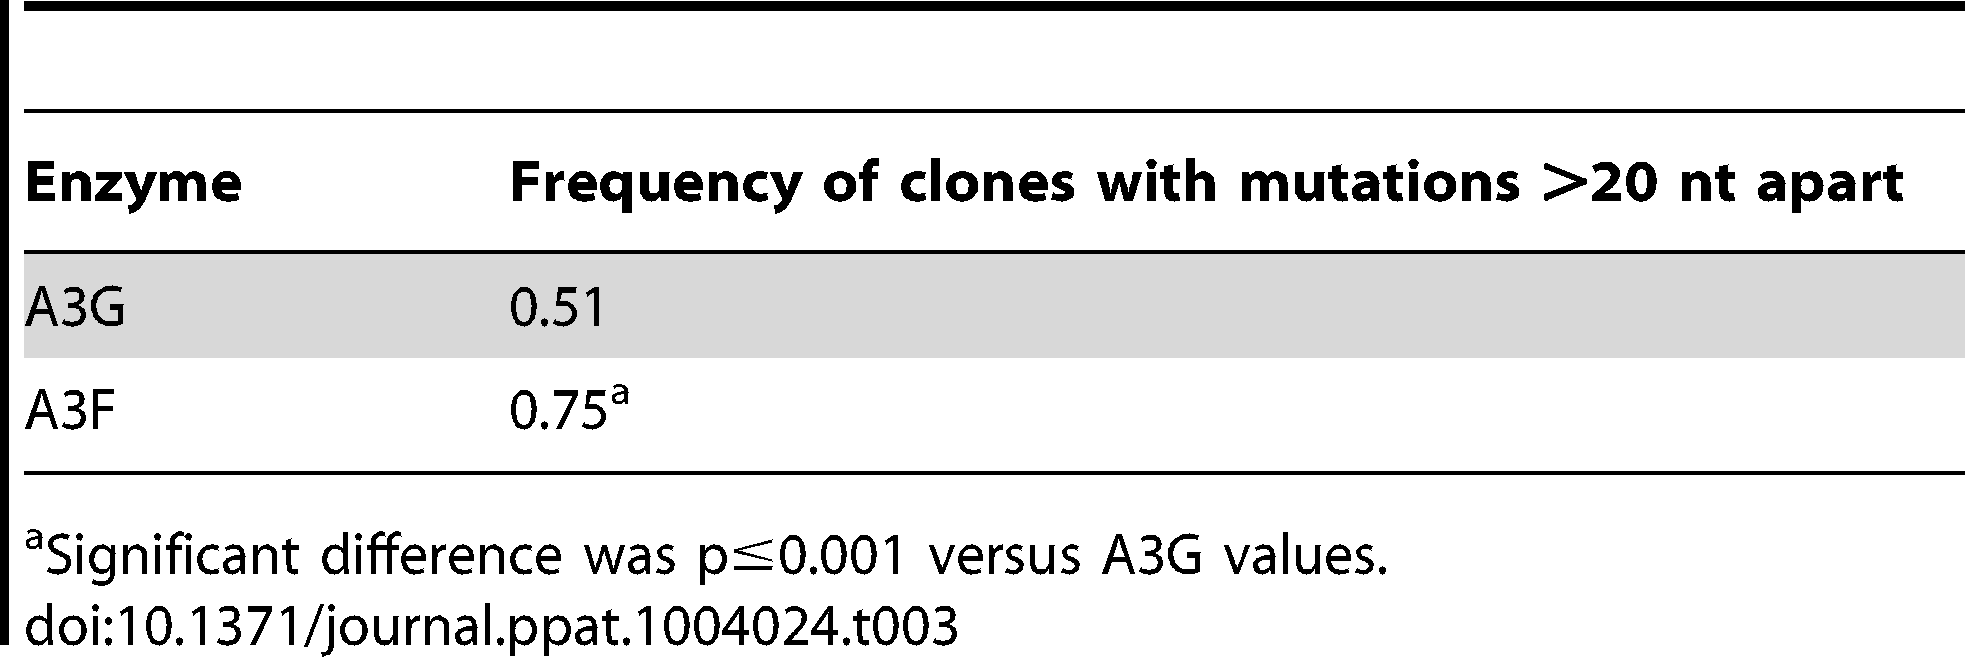 Analysis of distances between G→A mutations for A3G and A3F.